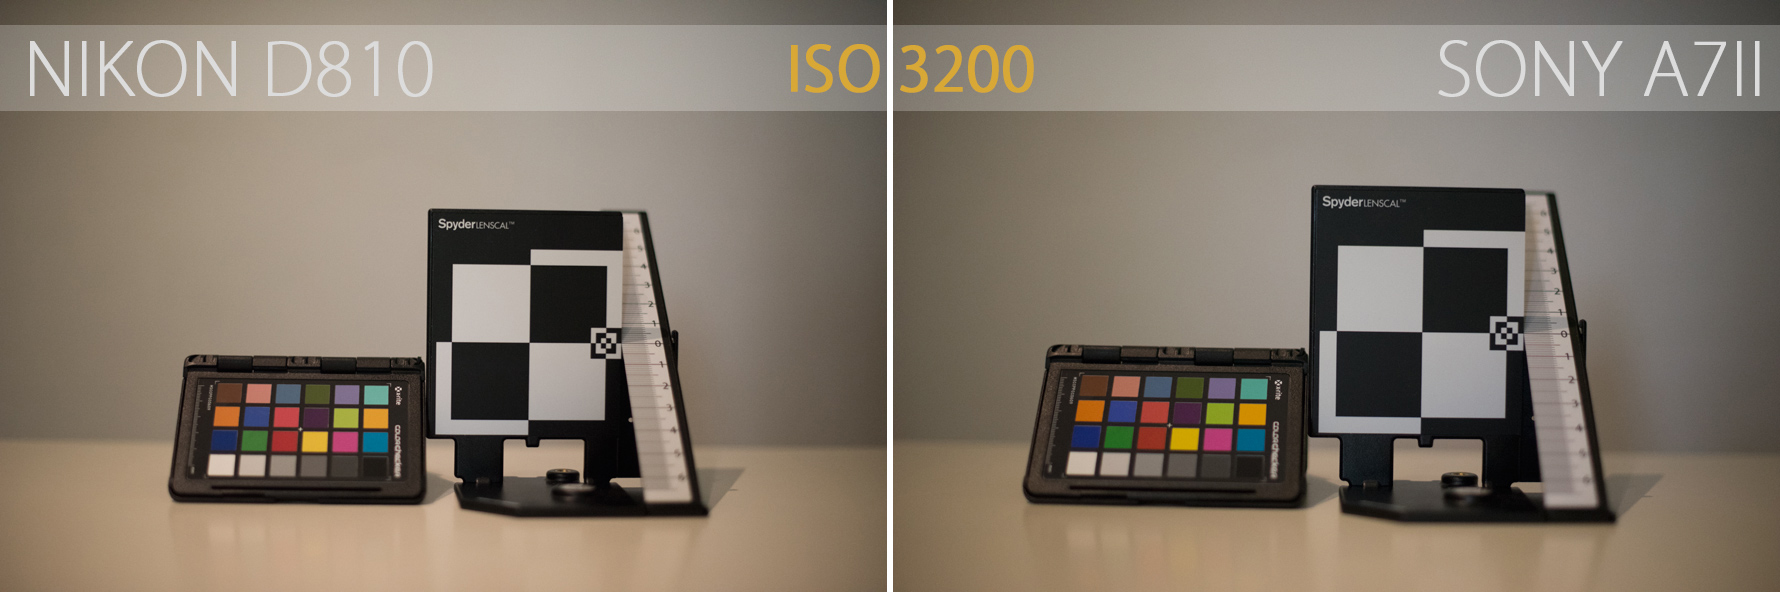 comparison between Nikon D810 and Sony a7II to ISO 3200